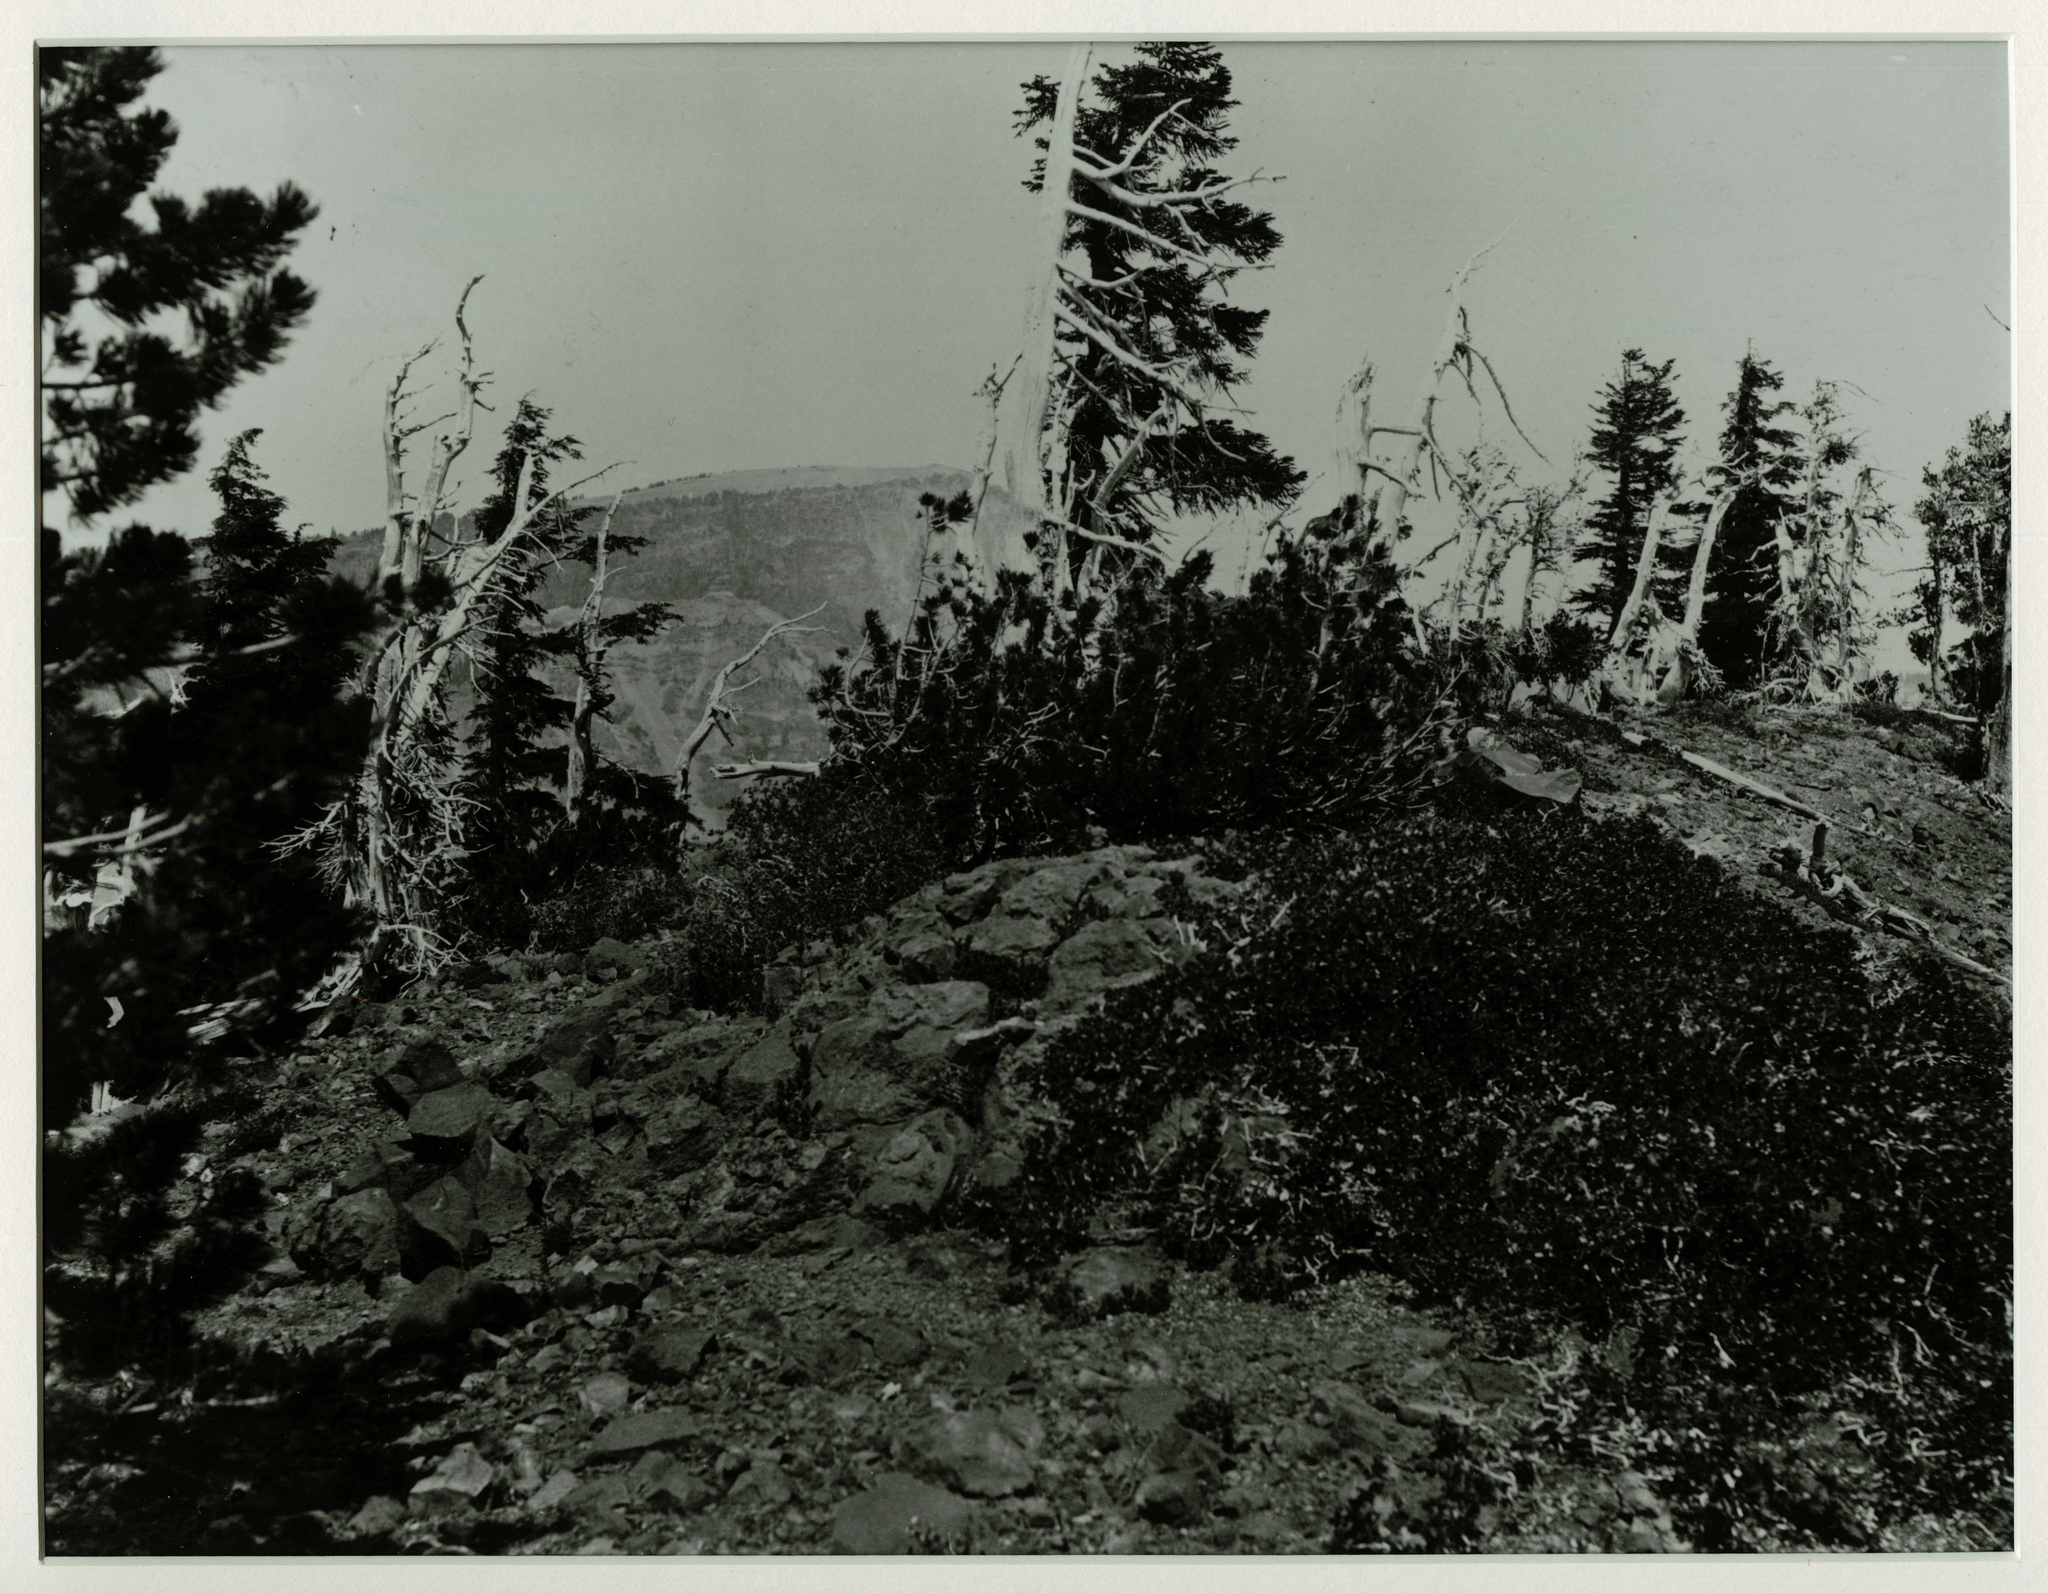 Portion of the crater lip on top of Wizard Island with Llao Rock in the distance. Photographed by J.S. Diller in the 1890s or 1901 during the USGS survey of the Crater Lake area.